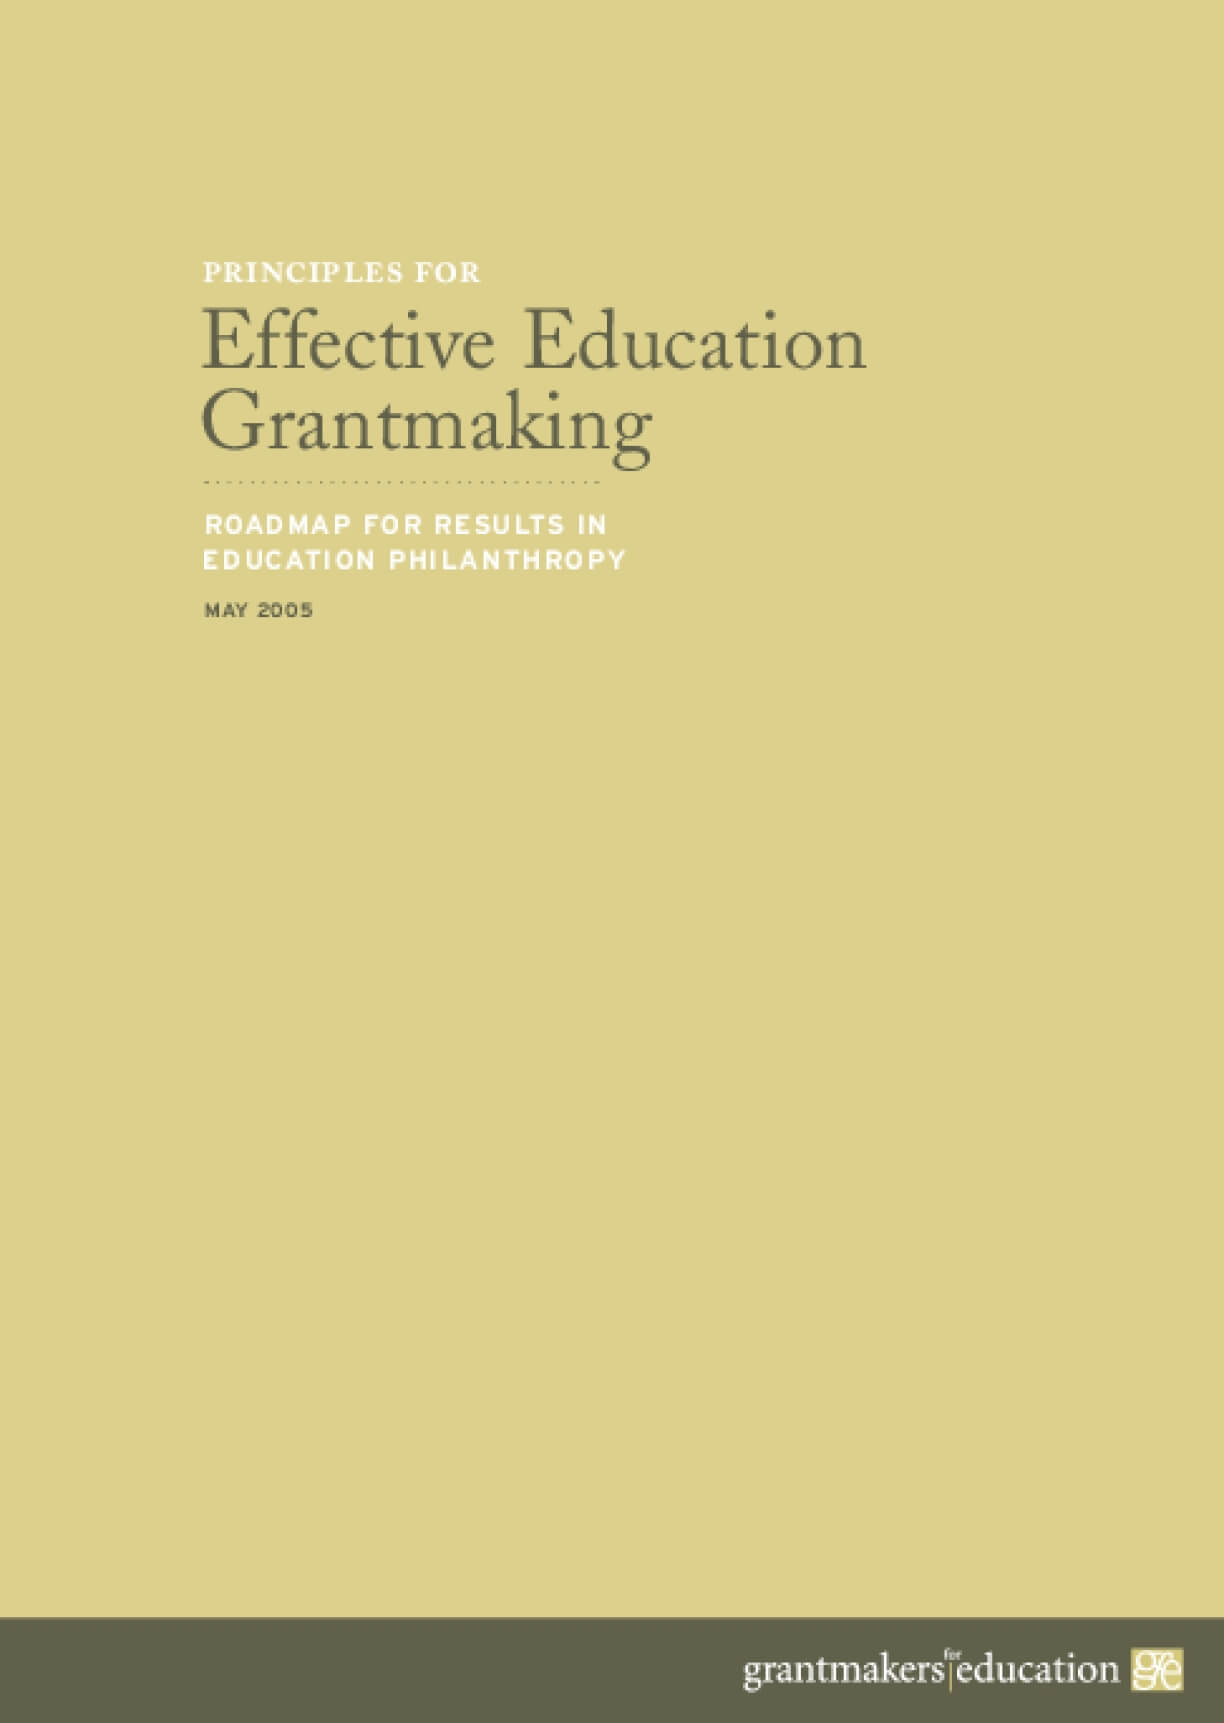 Principles for Effective Education Grantmaking